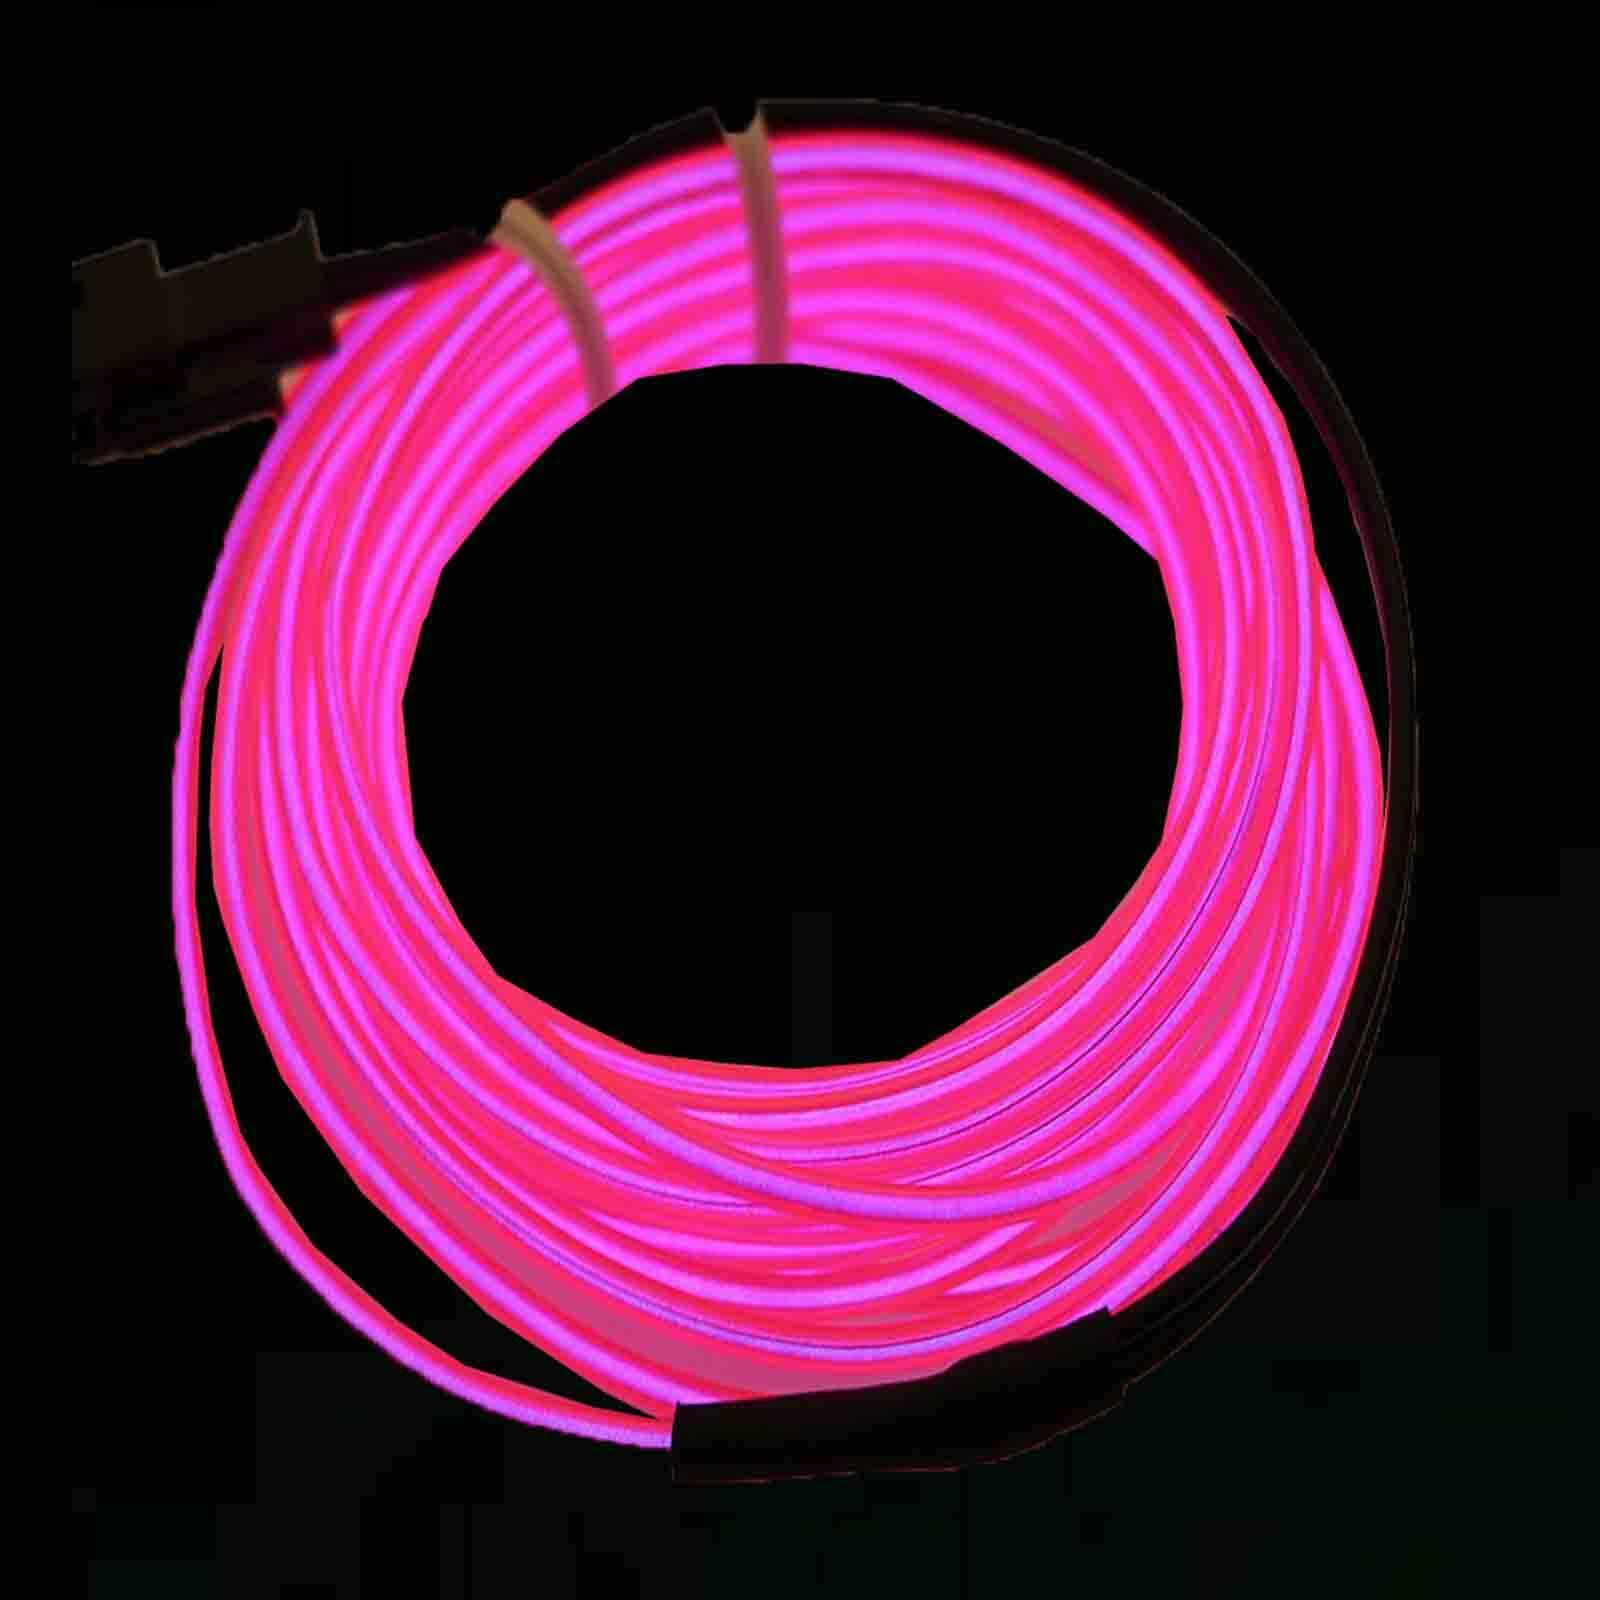 Neon Led Light Glow El Wire String Strip Rope Decor Car Party Controller 4 65 Lights Fairy